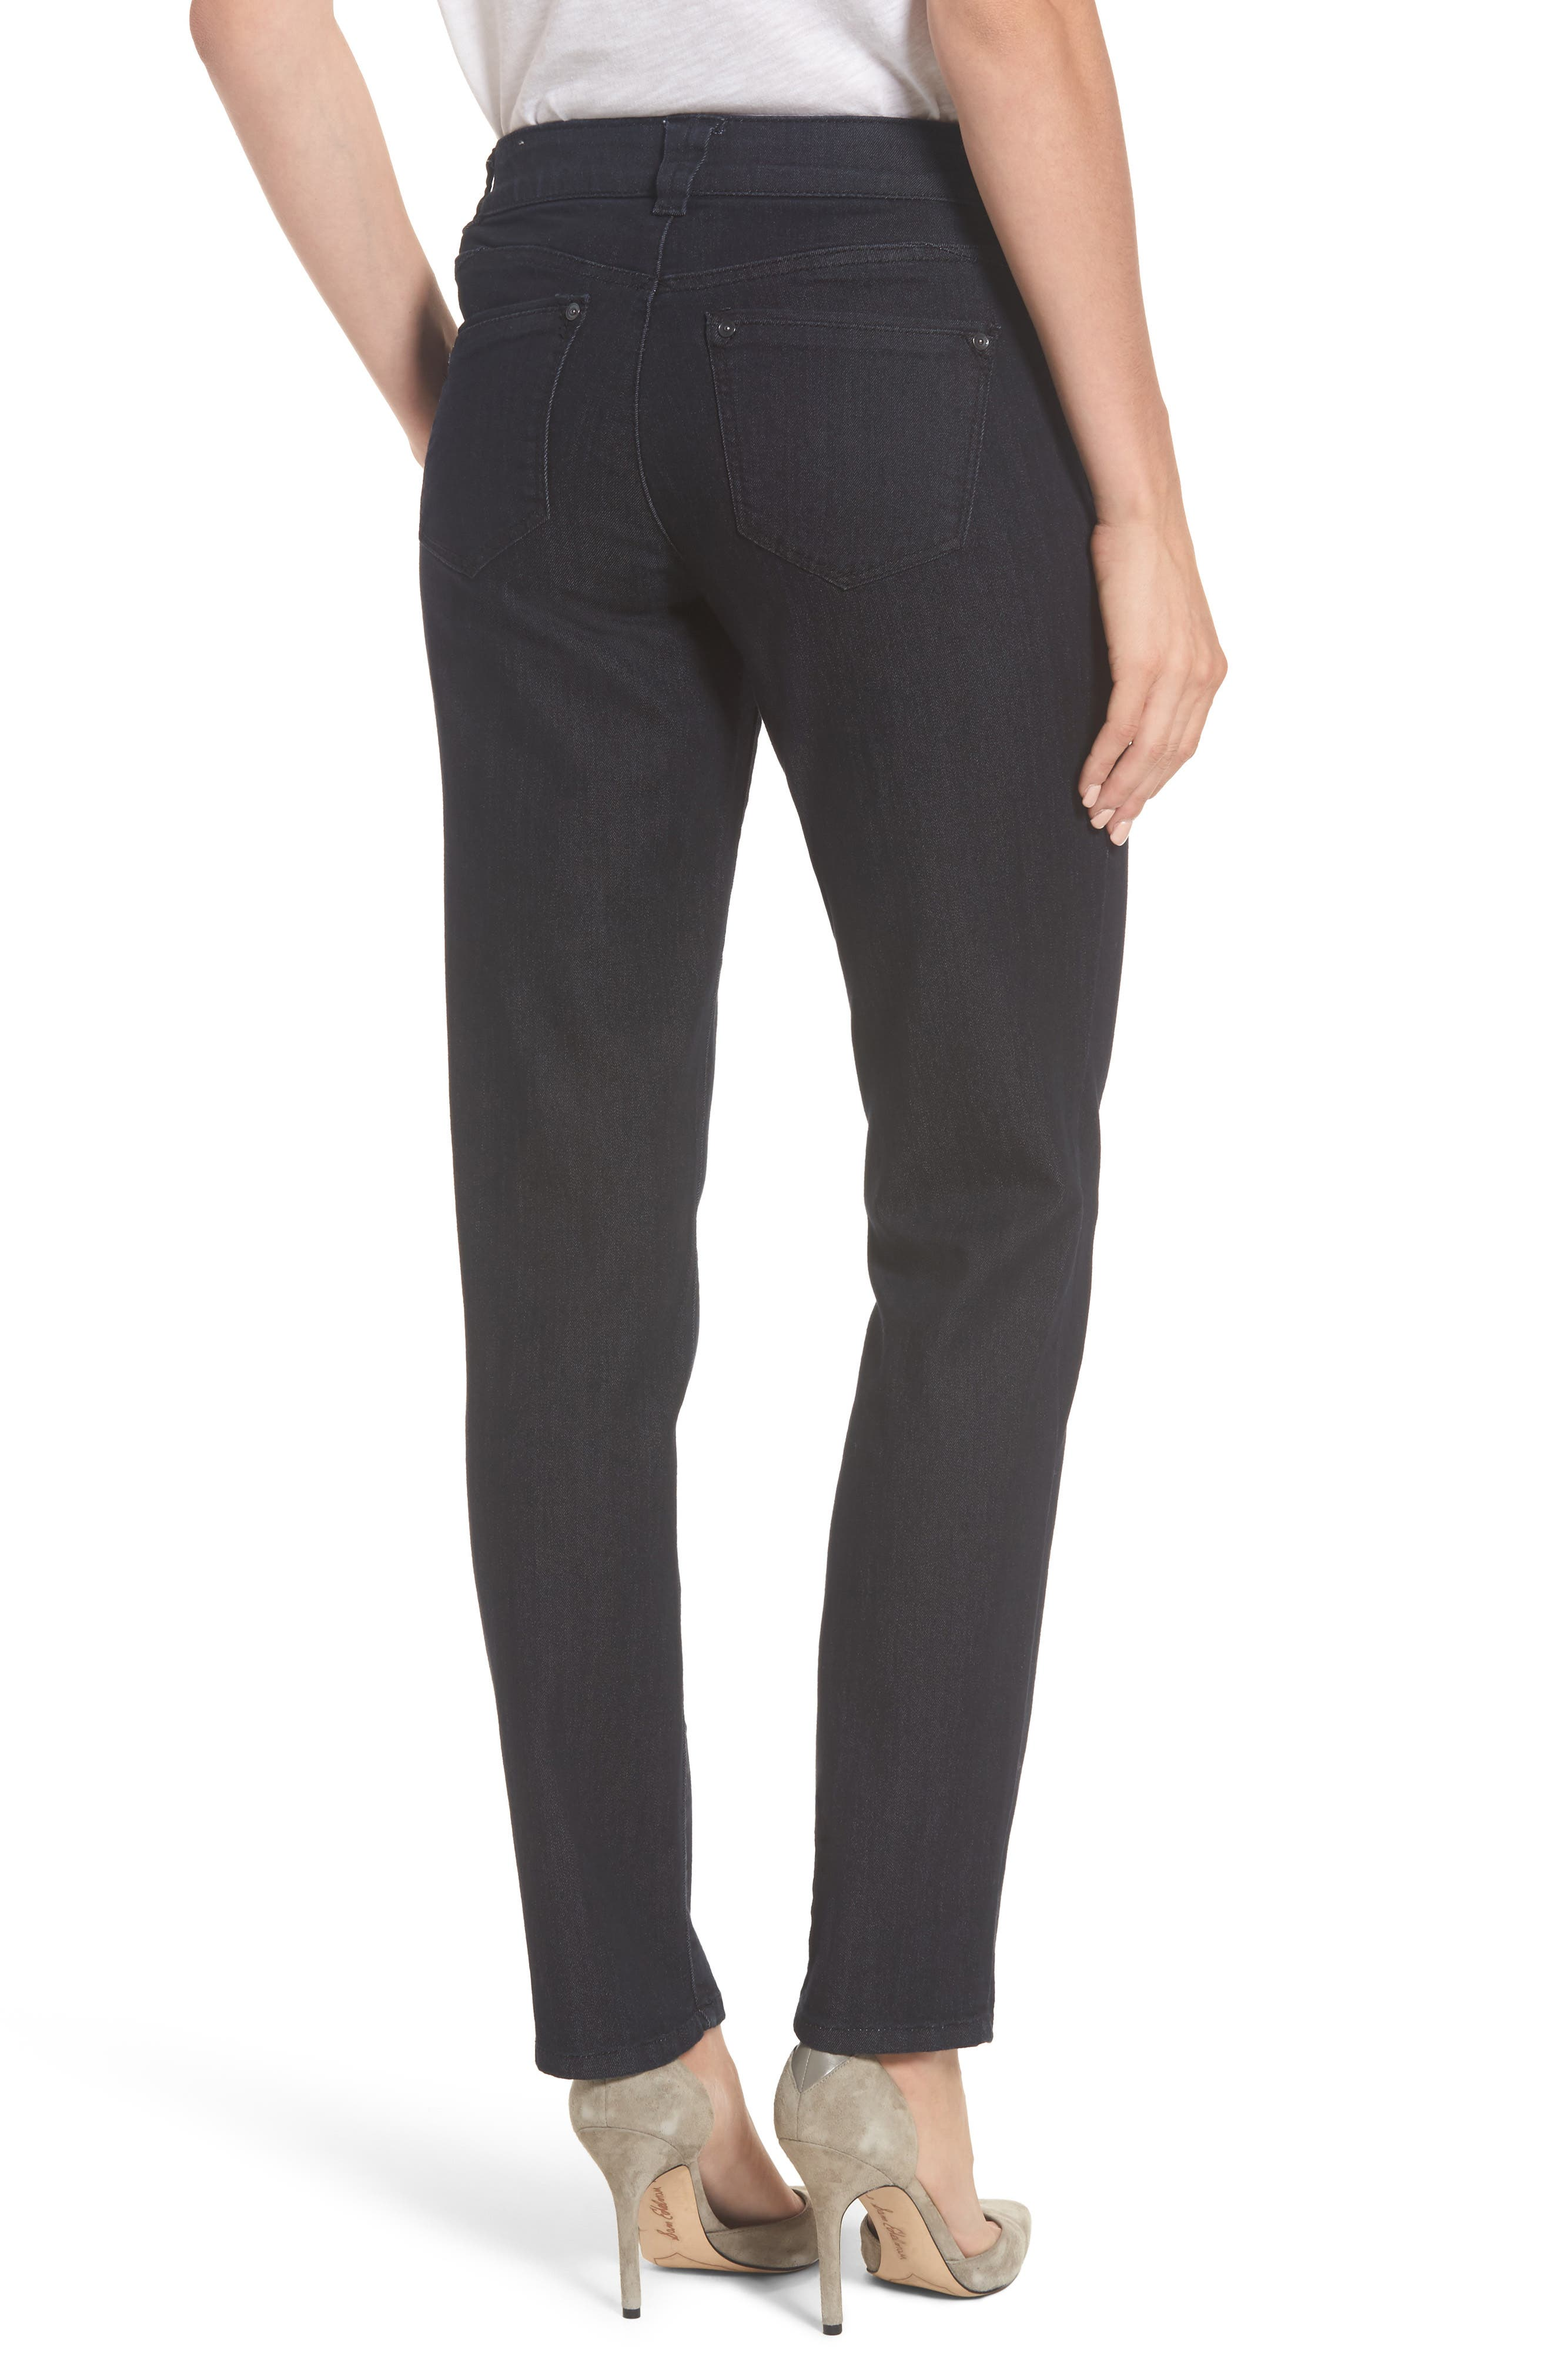 Alternate Image 2  - Wit & Wisdom Ab-solution Straight Leg Jeans (Regular & Petite) (Nordstrom Exclusive)